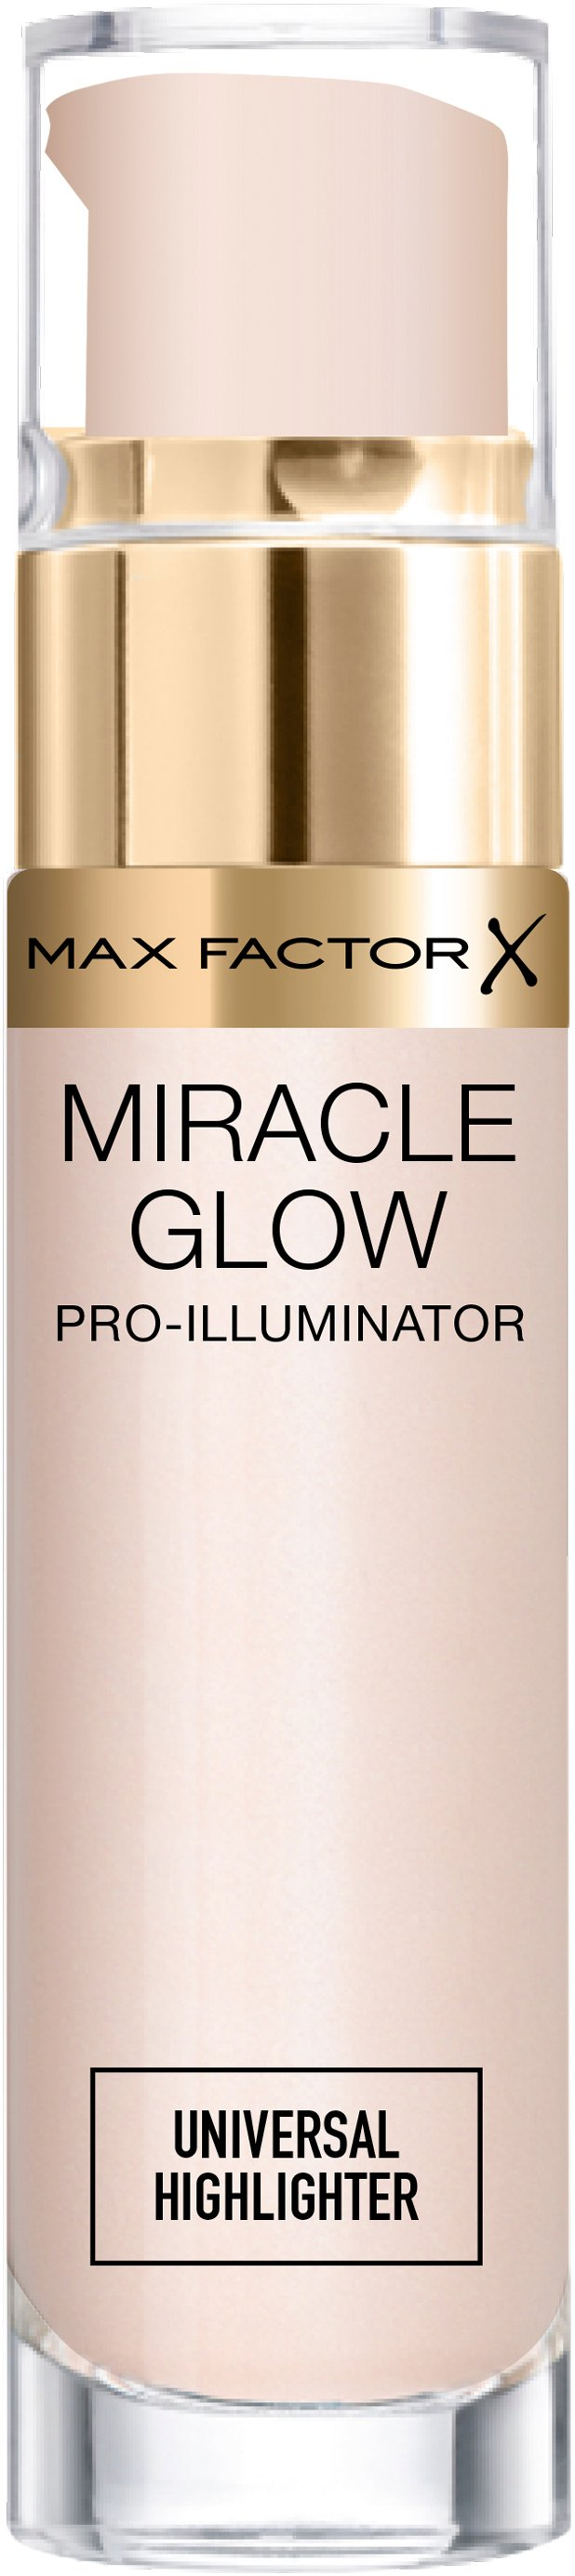 Max Factor - Miracle Glow Highlighter